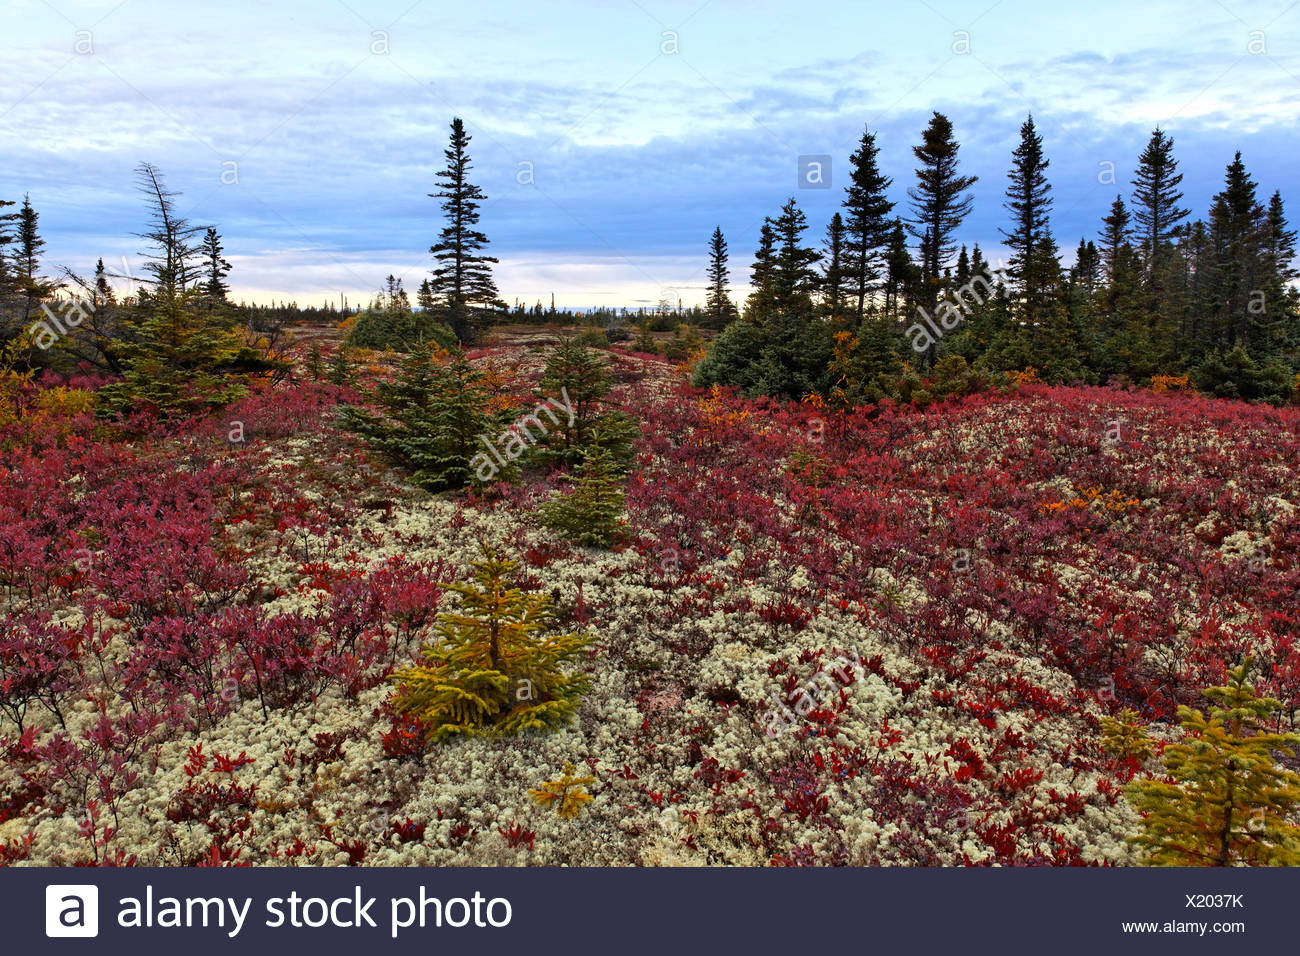 Boreal forest along St Lawrence river, Black Spruce (Picea mariana) and Northern Highbush Blueberry (Vaccinium corymbosum) - Stock Image